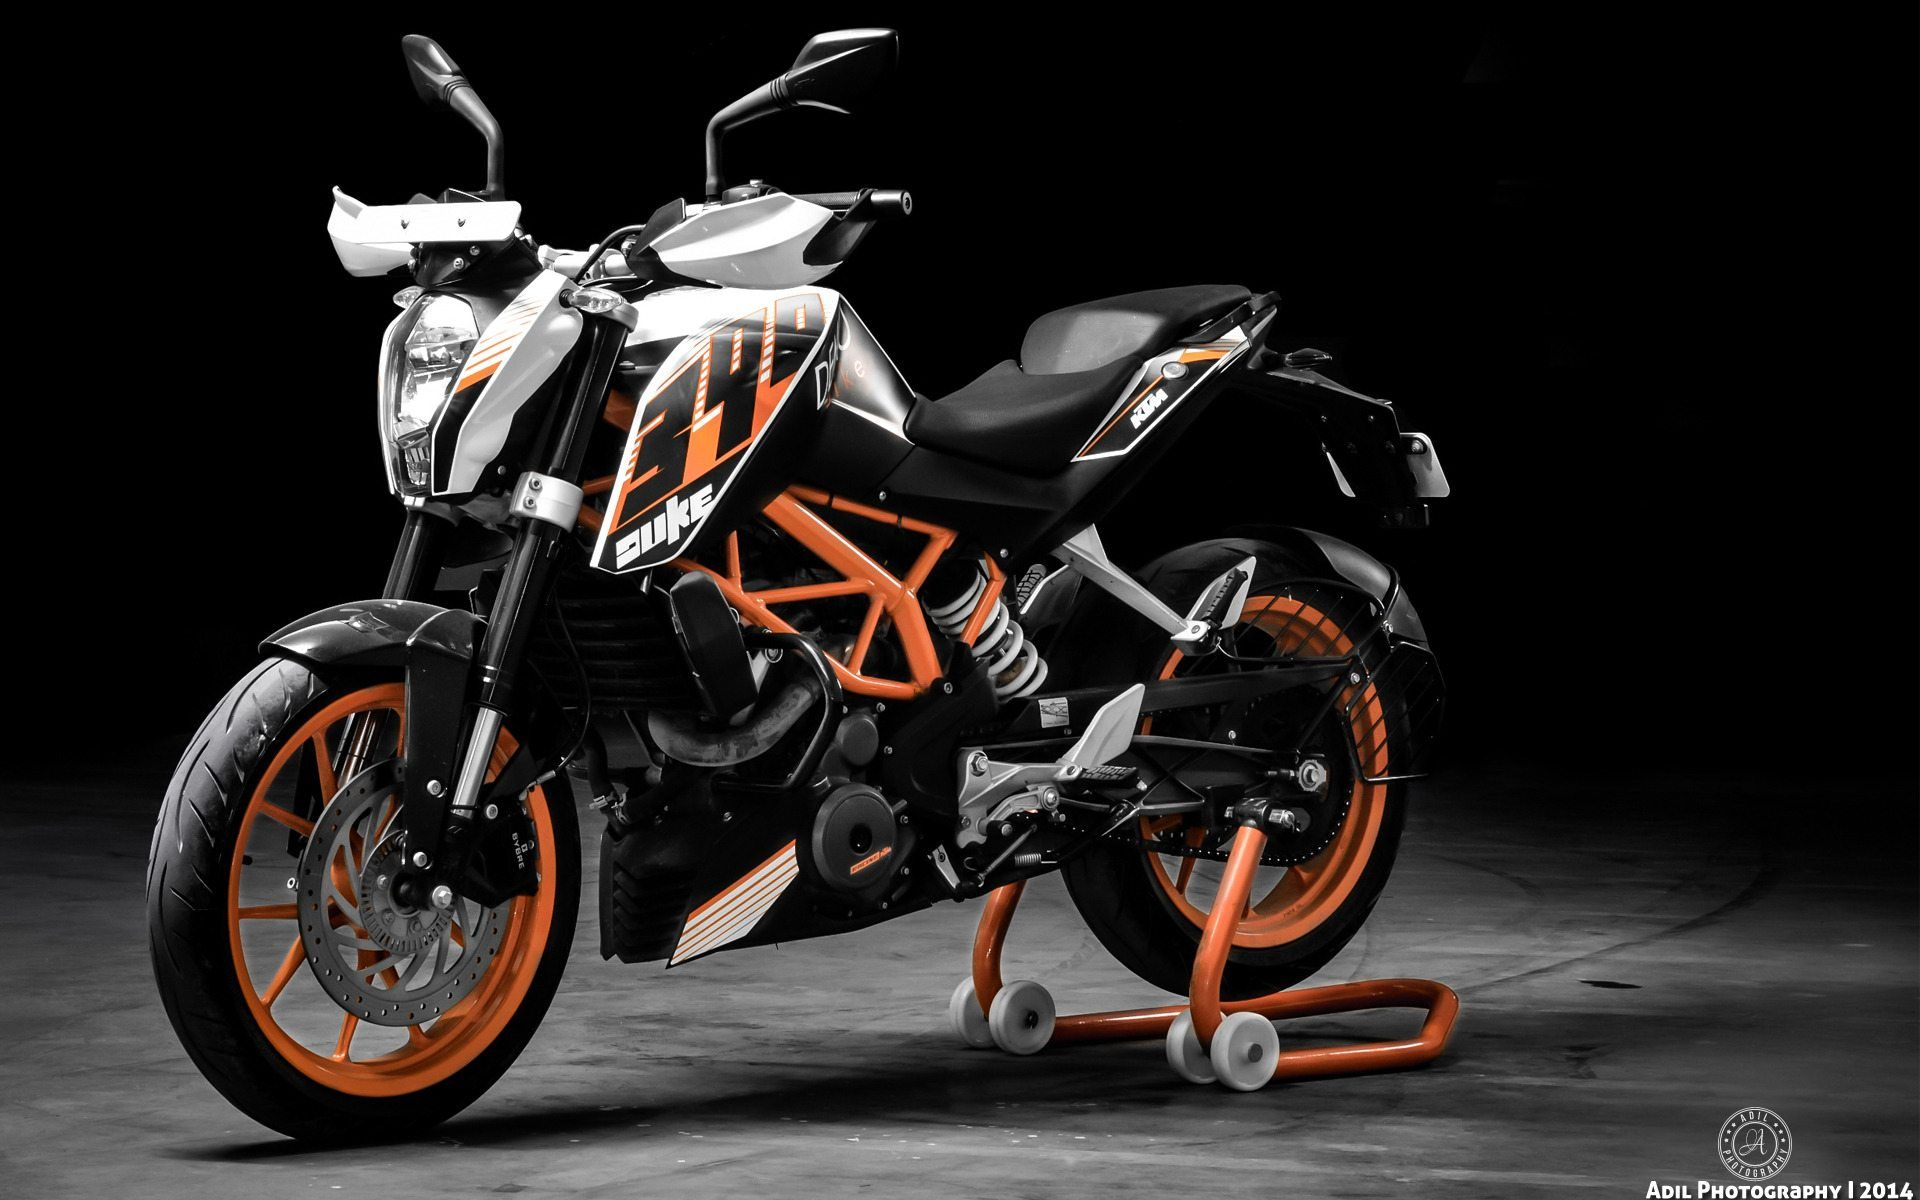 Ktm 390 Duke Motorcycle Hd Wallpaper 1920x1200 10447 1 Jpg 1920